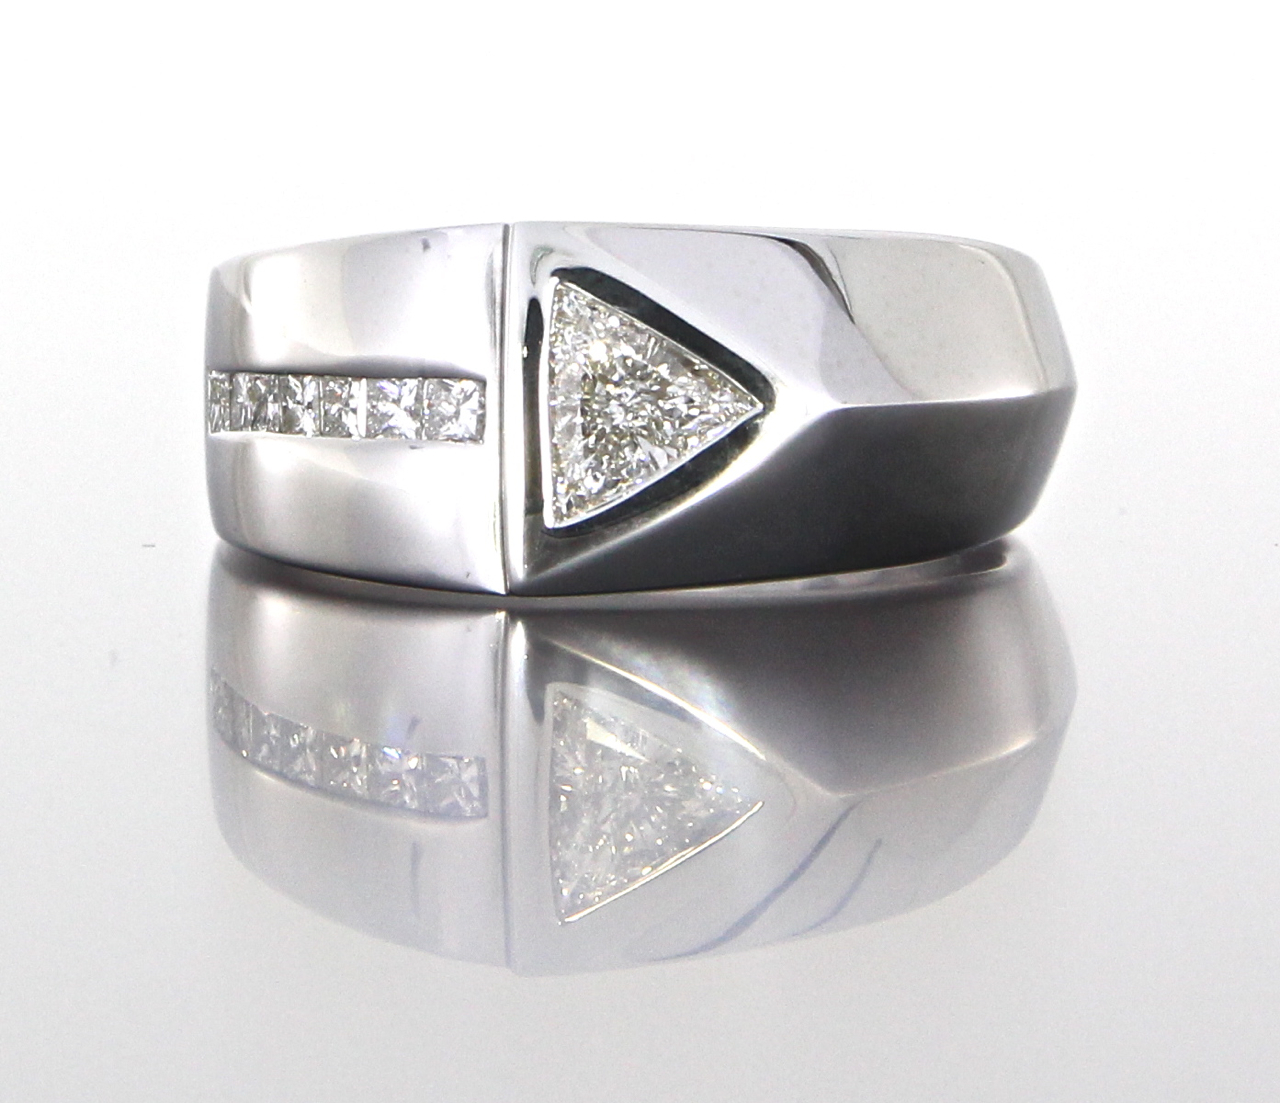 unique-custom-trillion-diamond-mens-wedding-band-white-gold-craft-revival-jewelers-store-grand-rapids